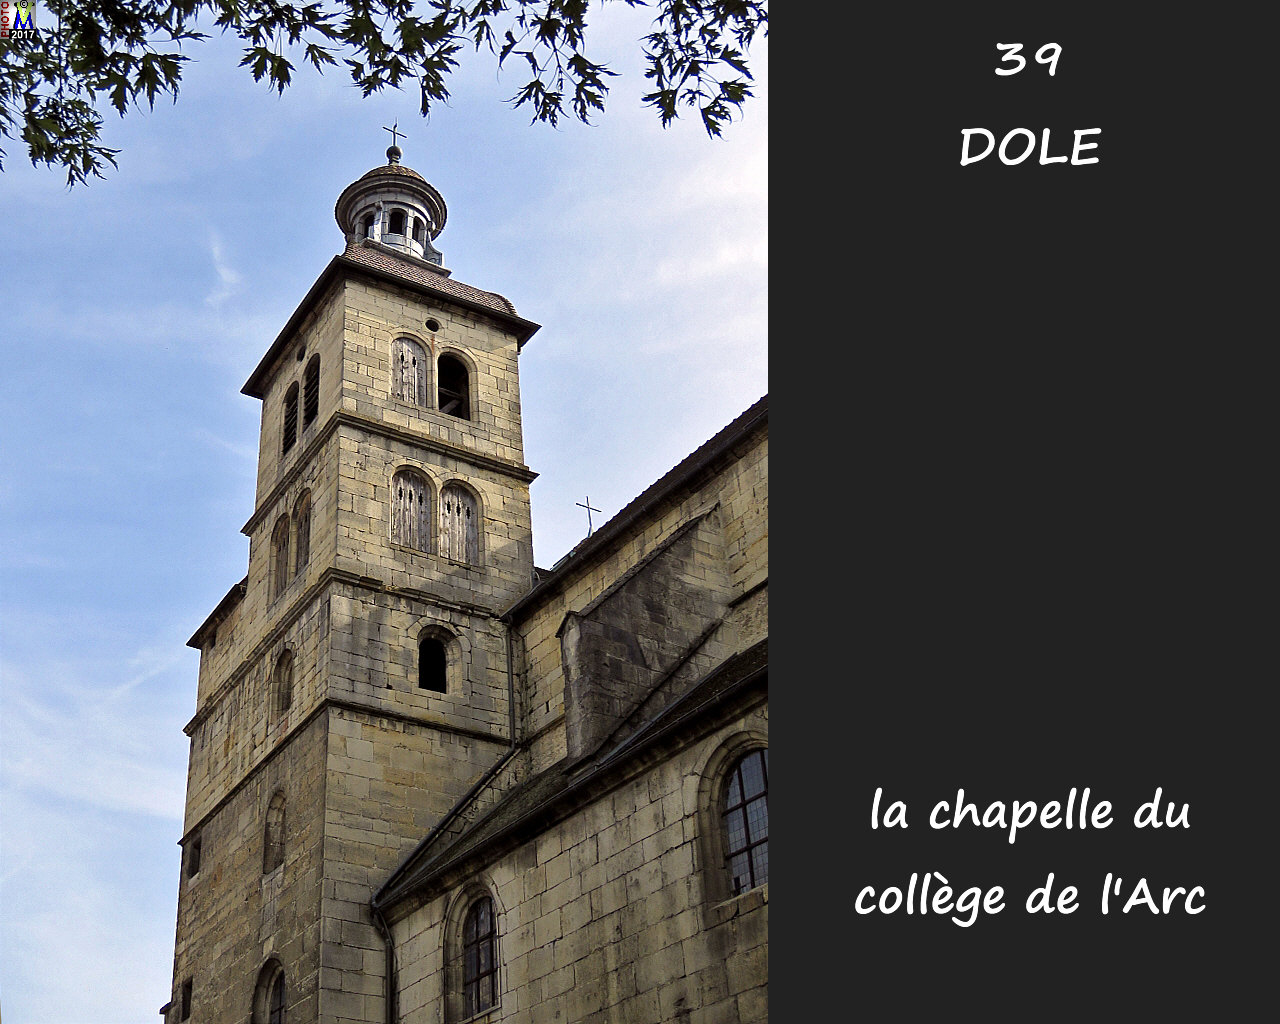 39DOLE_chapelle-Arc_102.jpg